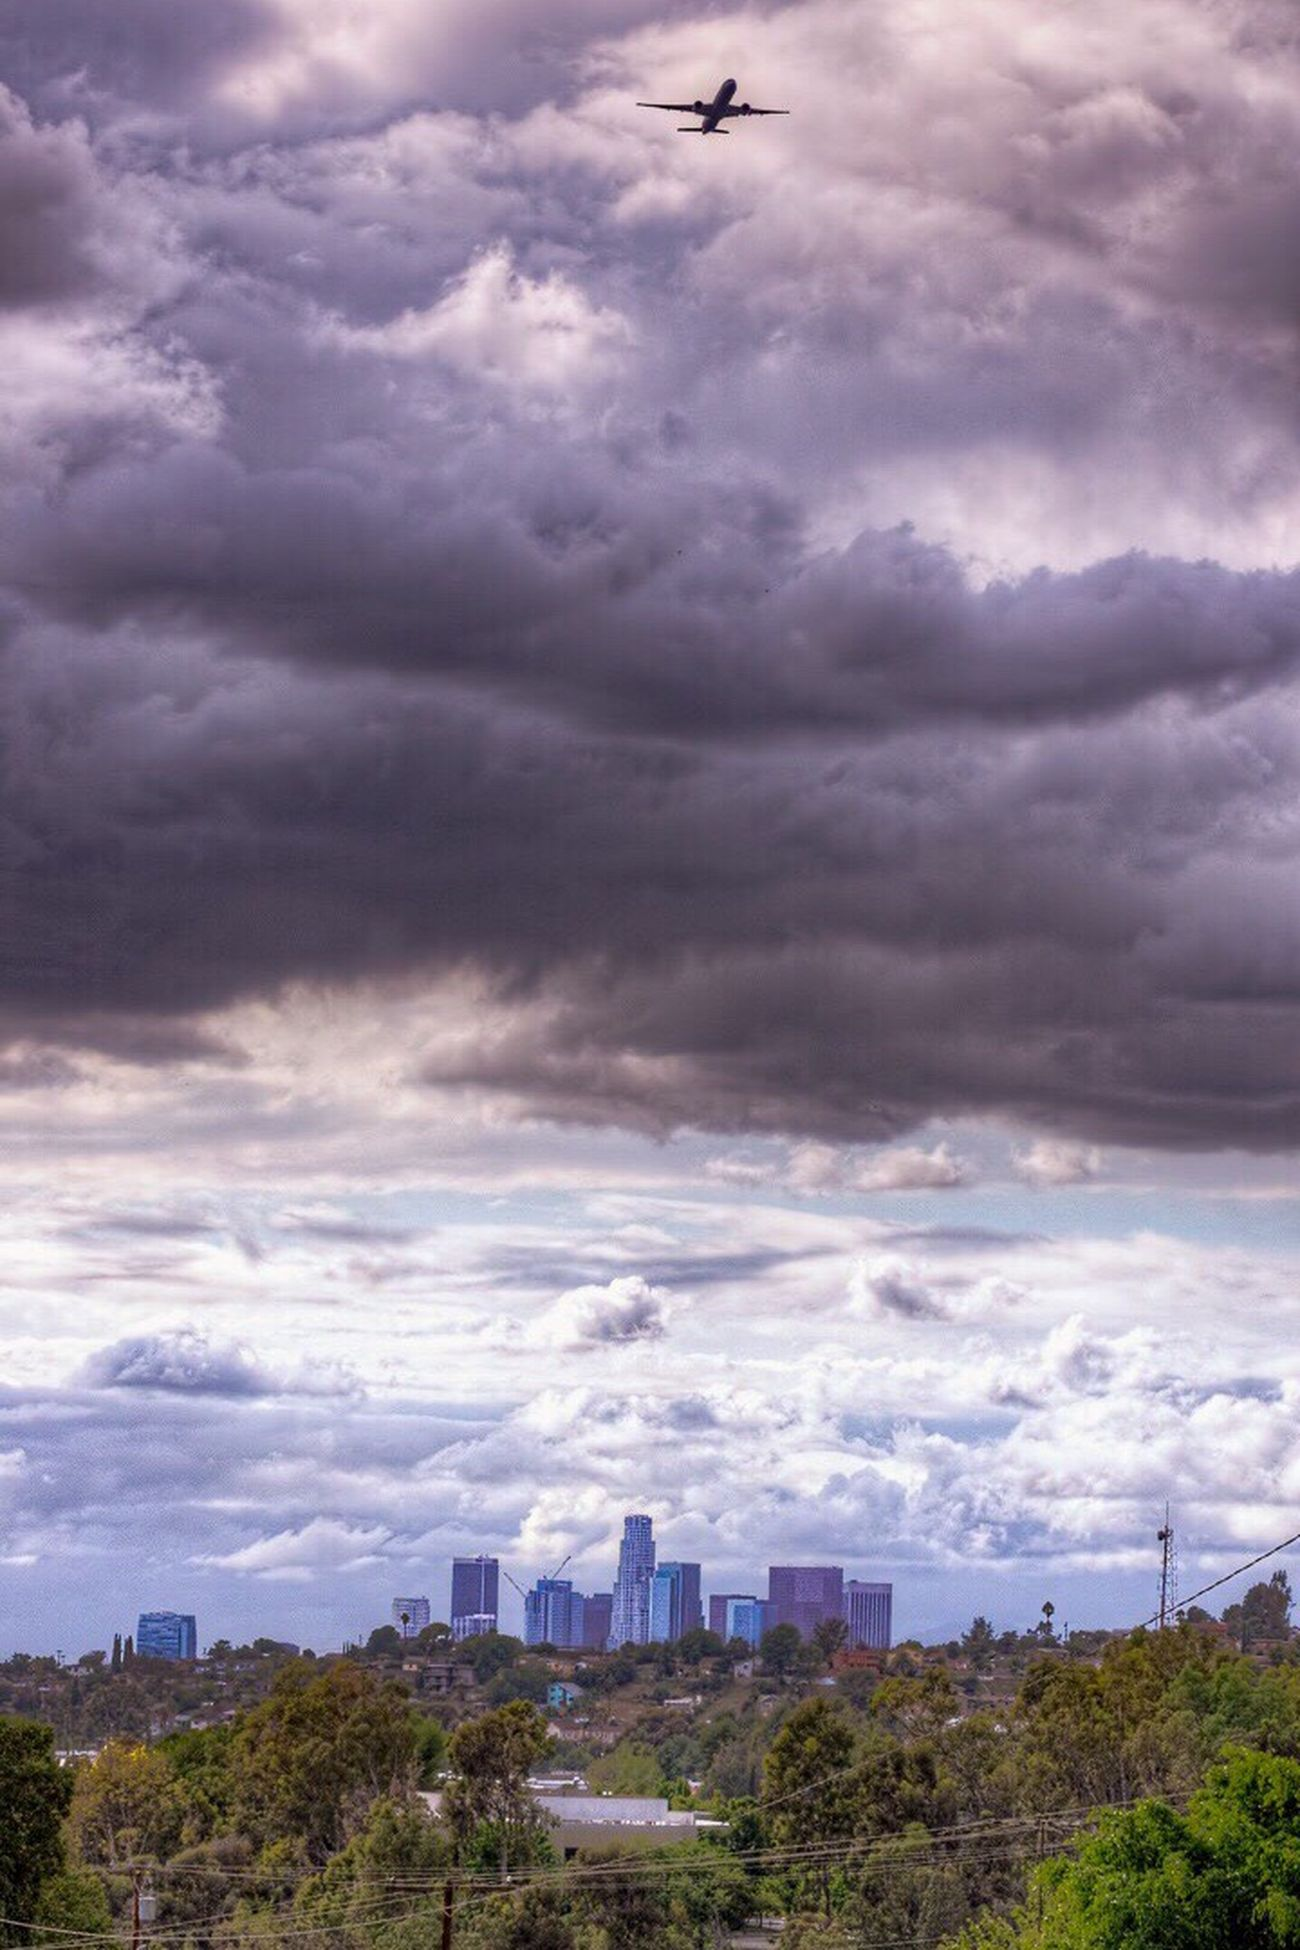 Clouds Sky And Clouds Airplane Cityscapes Skyline City Skyline Dramatic Sky Check This Out East Los Pride TheCreatorClass First Eyeem Photo